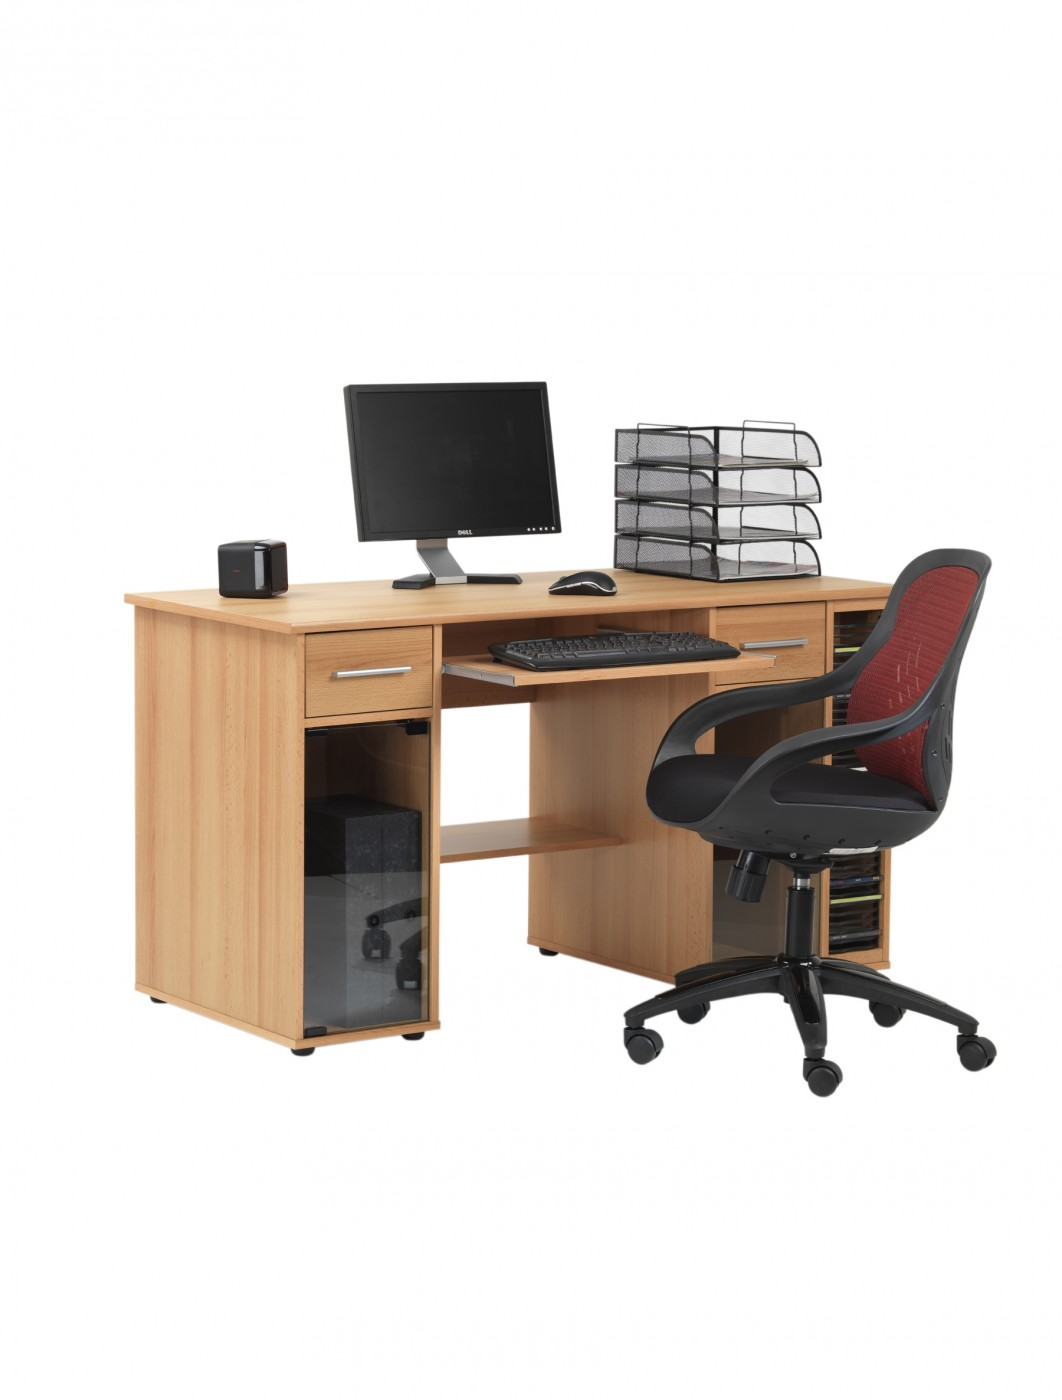 Used Office Furniture San Jose Ca Used Office Furniture Providing San Jose Mountain View Used